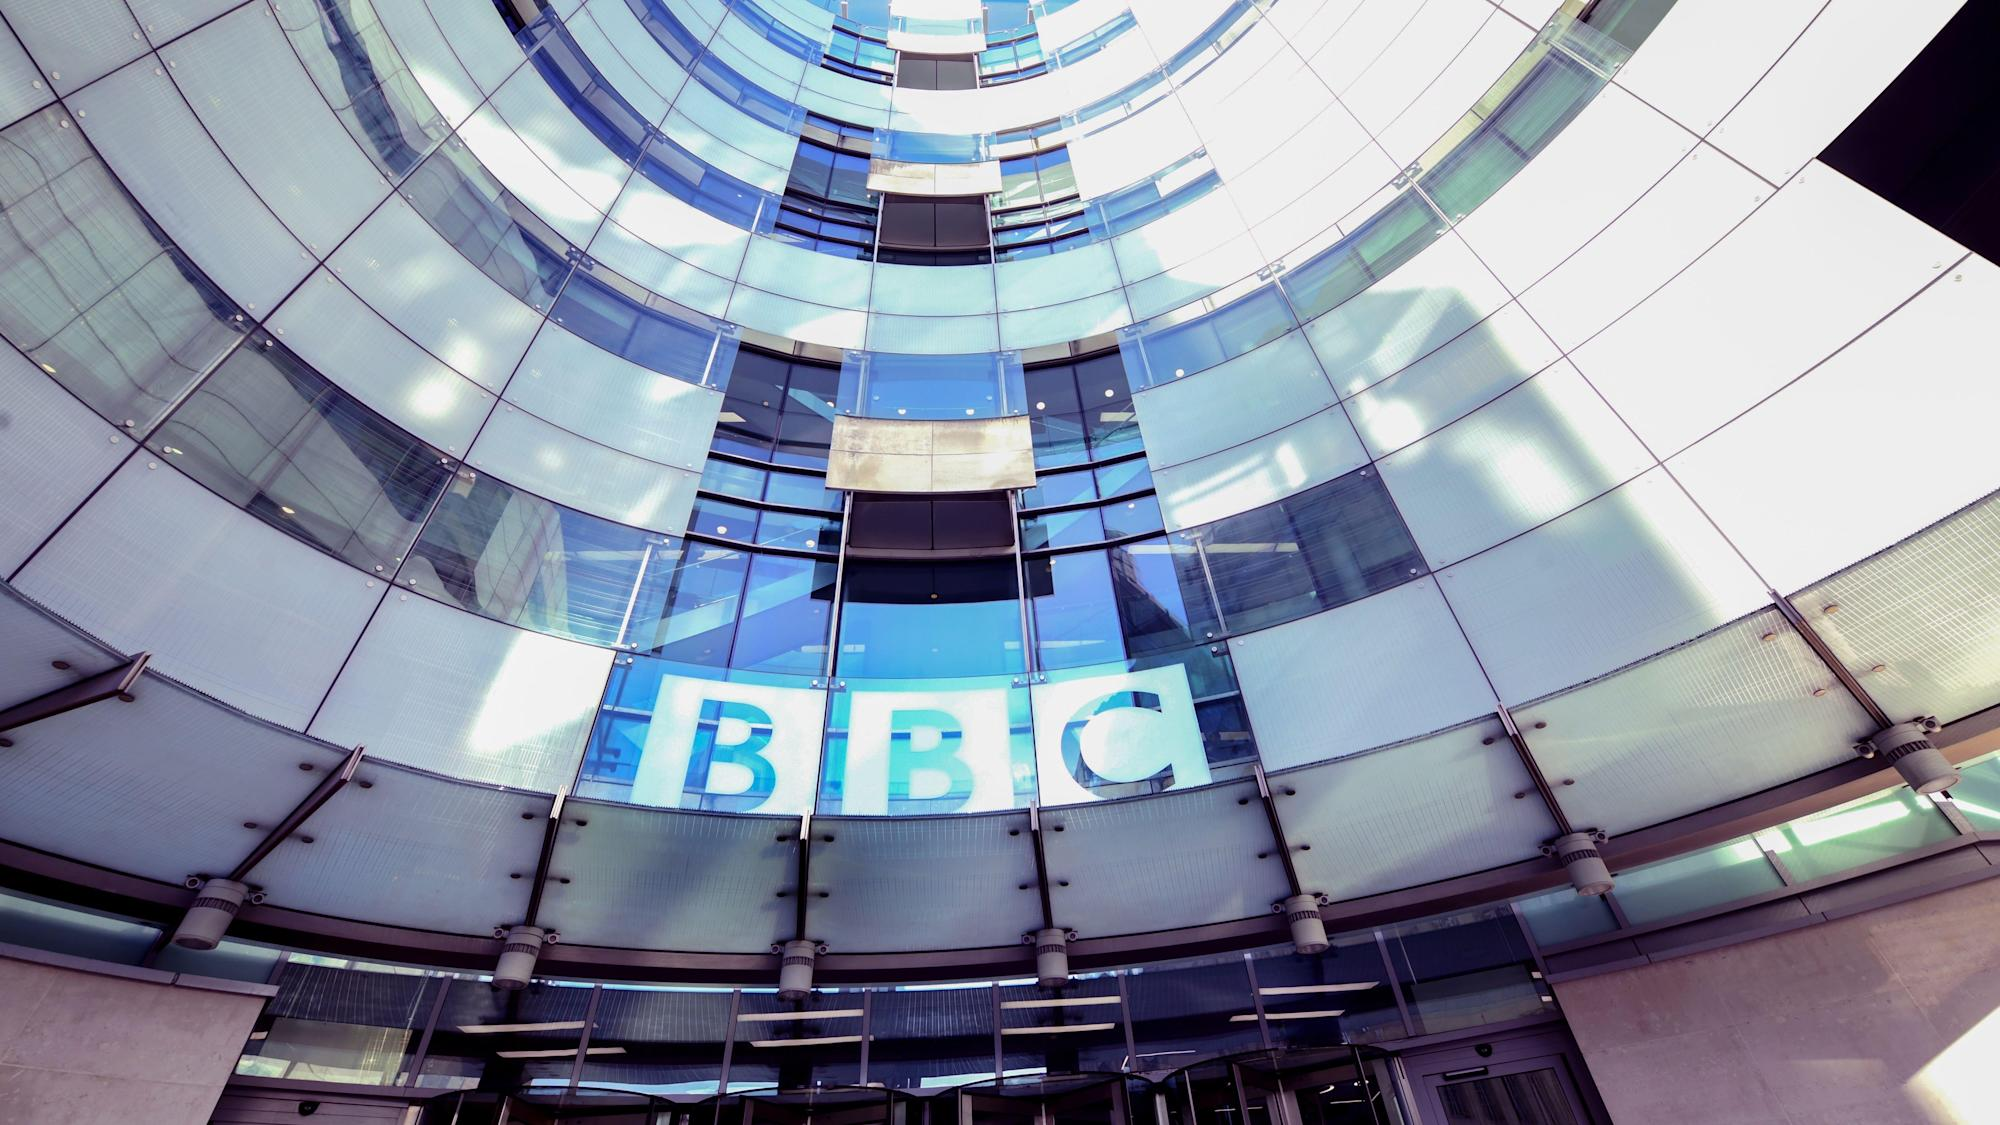 BBC faces call to compensate Panorama whistleblowers over Diana warnings